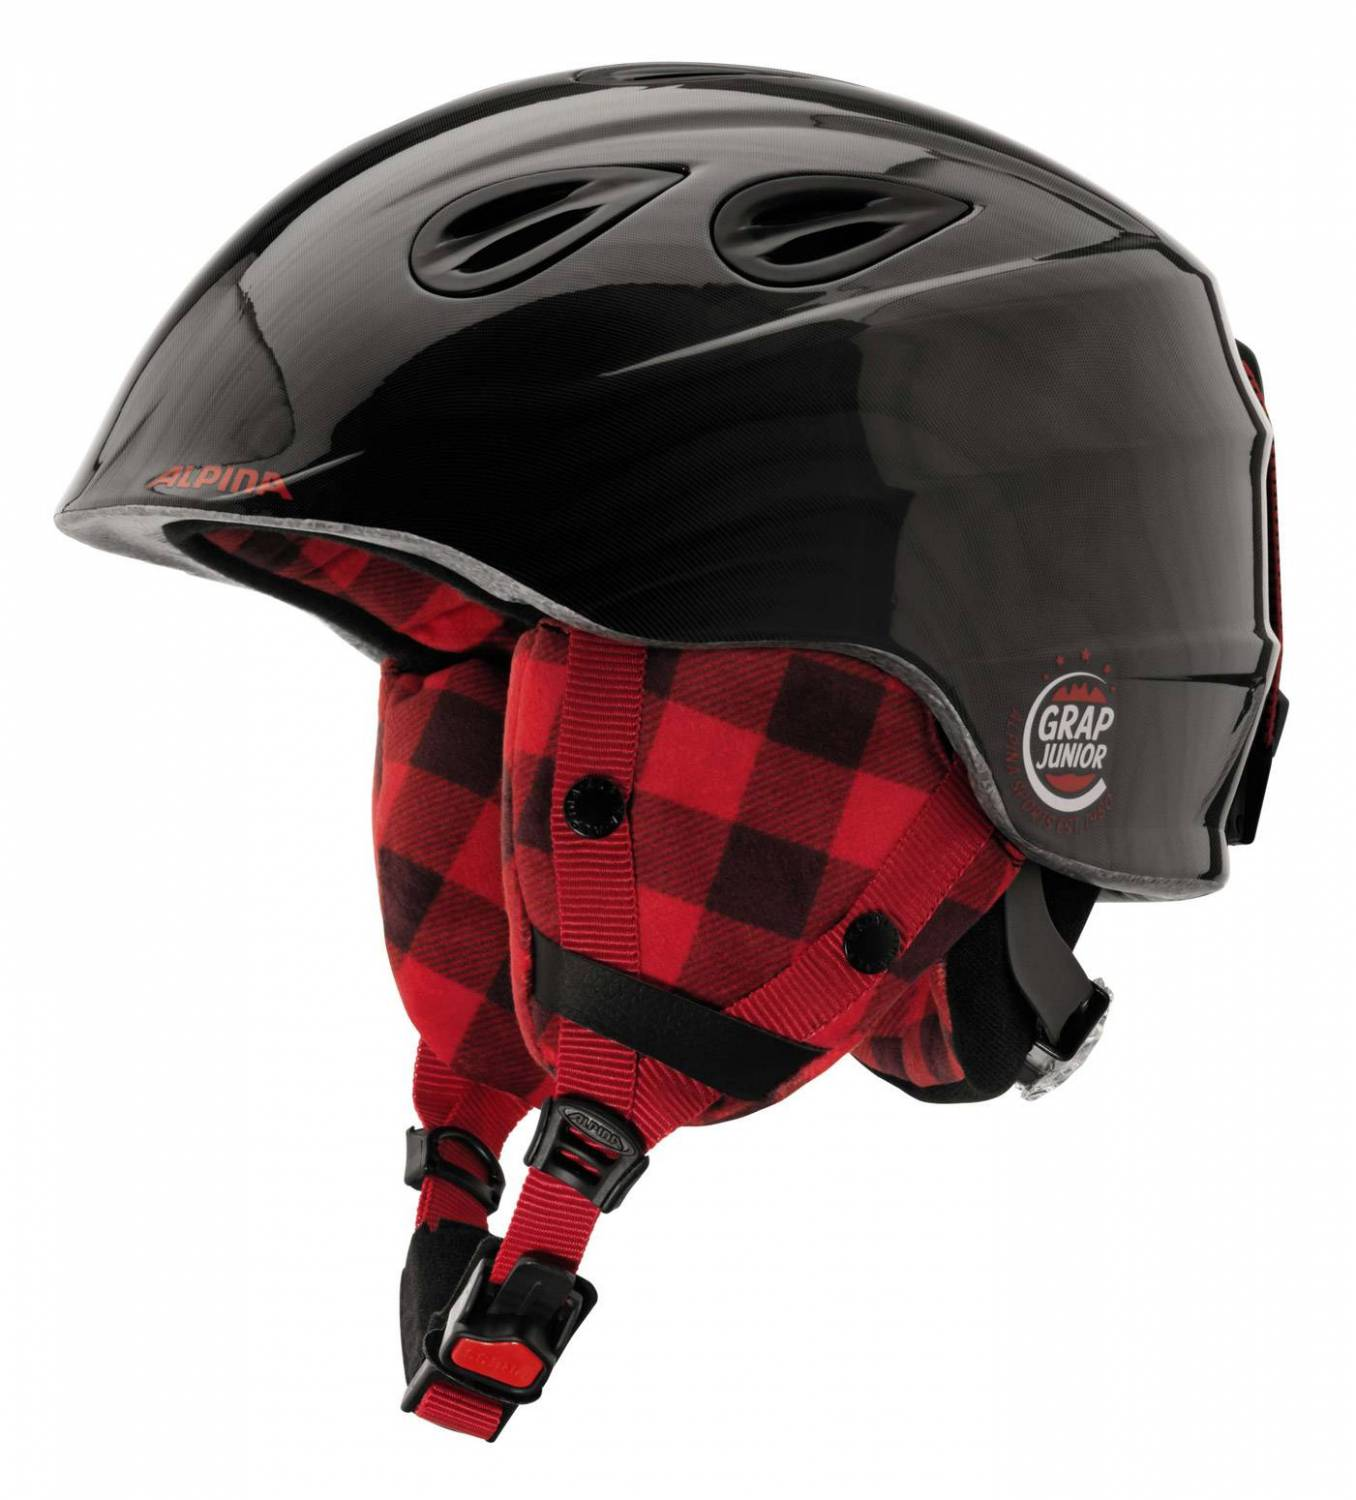 Alpina Grap 2.0 Junior Kinderskihelm (Größe 51 54 cm, 33 black lumberjack)